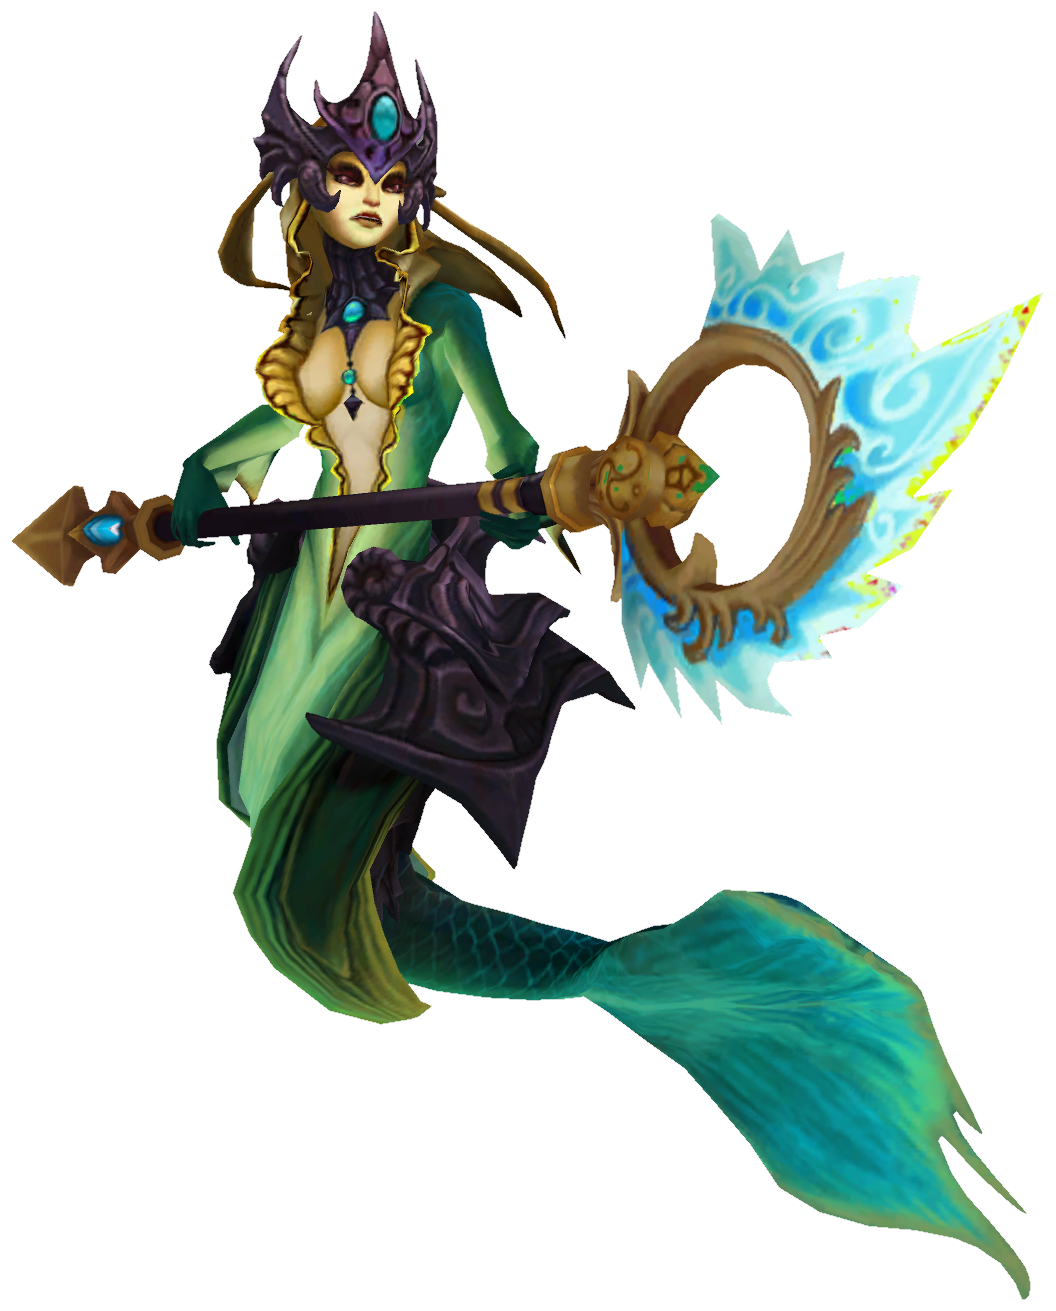 Nami Background League Of Legends Wiki Champions Items